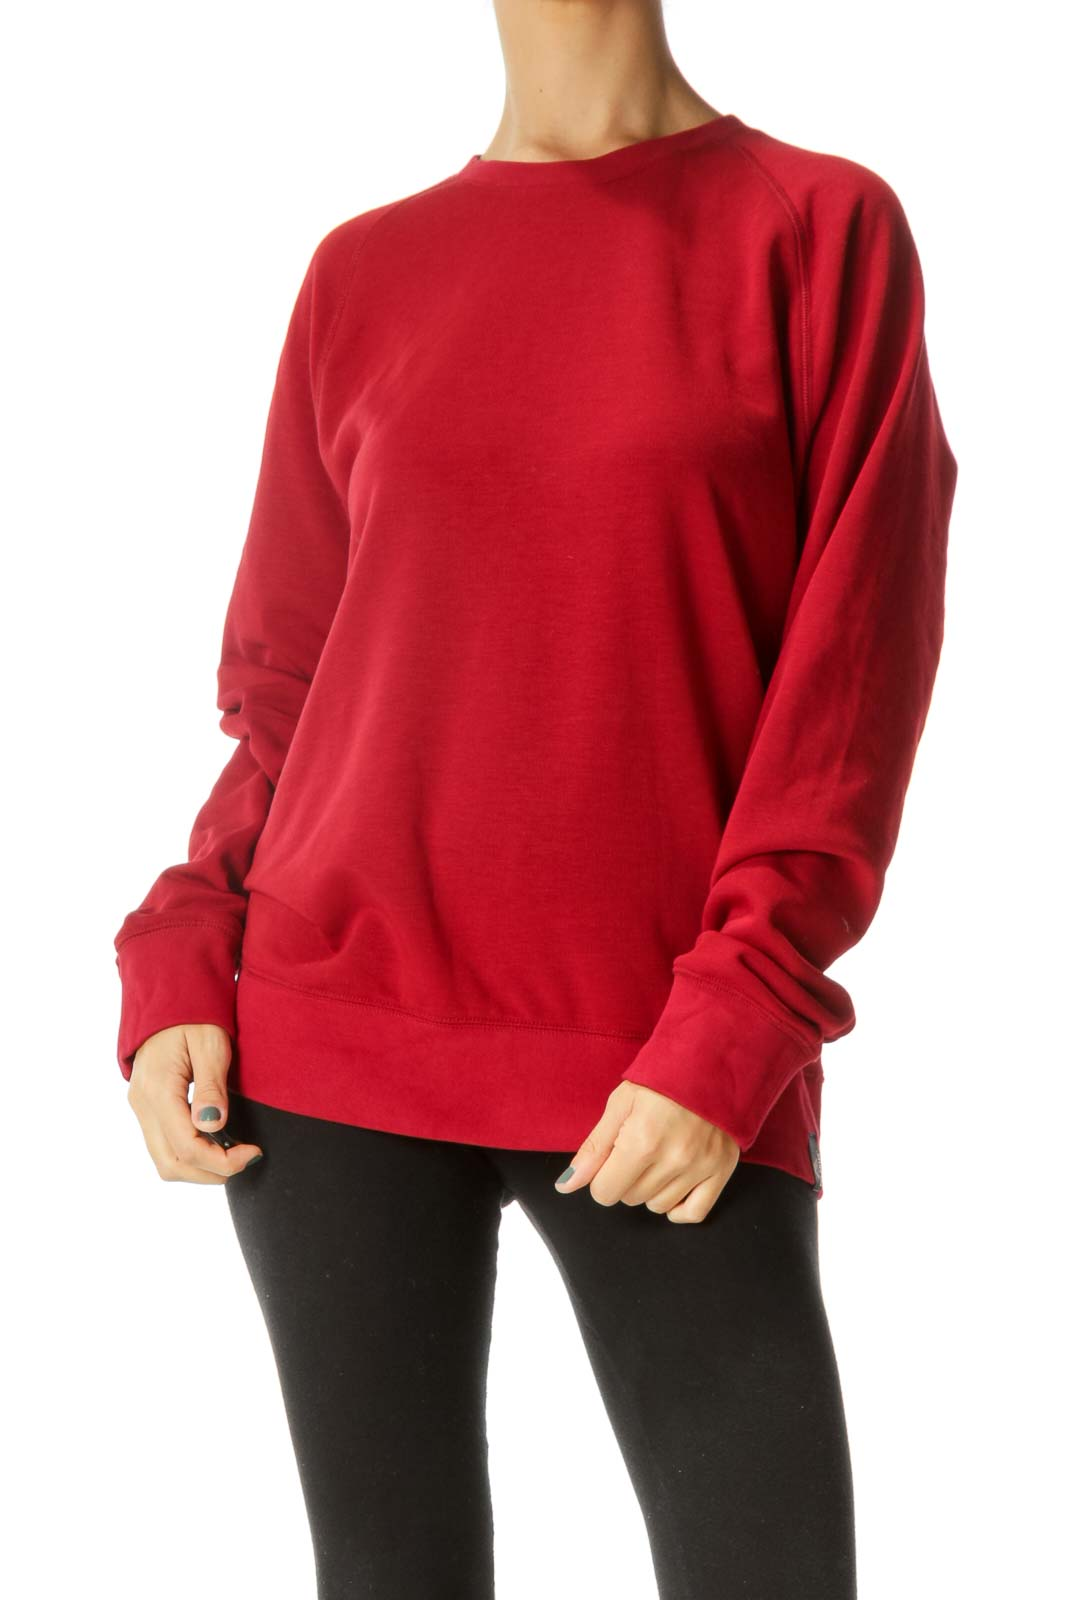 Red Round Neck Soft Pullover Sweater with Temperature Regulation Fabric Technology